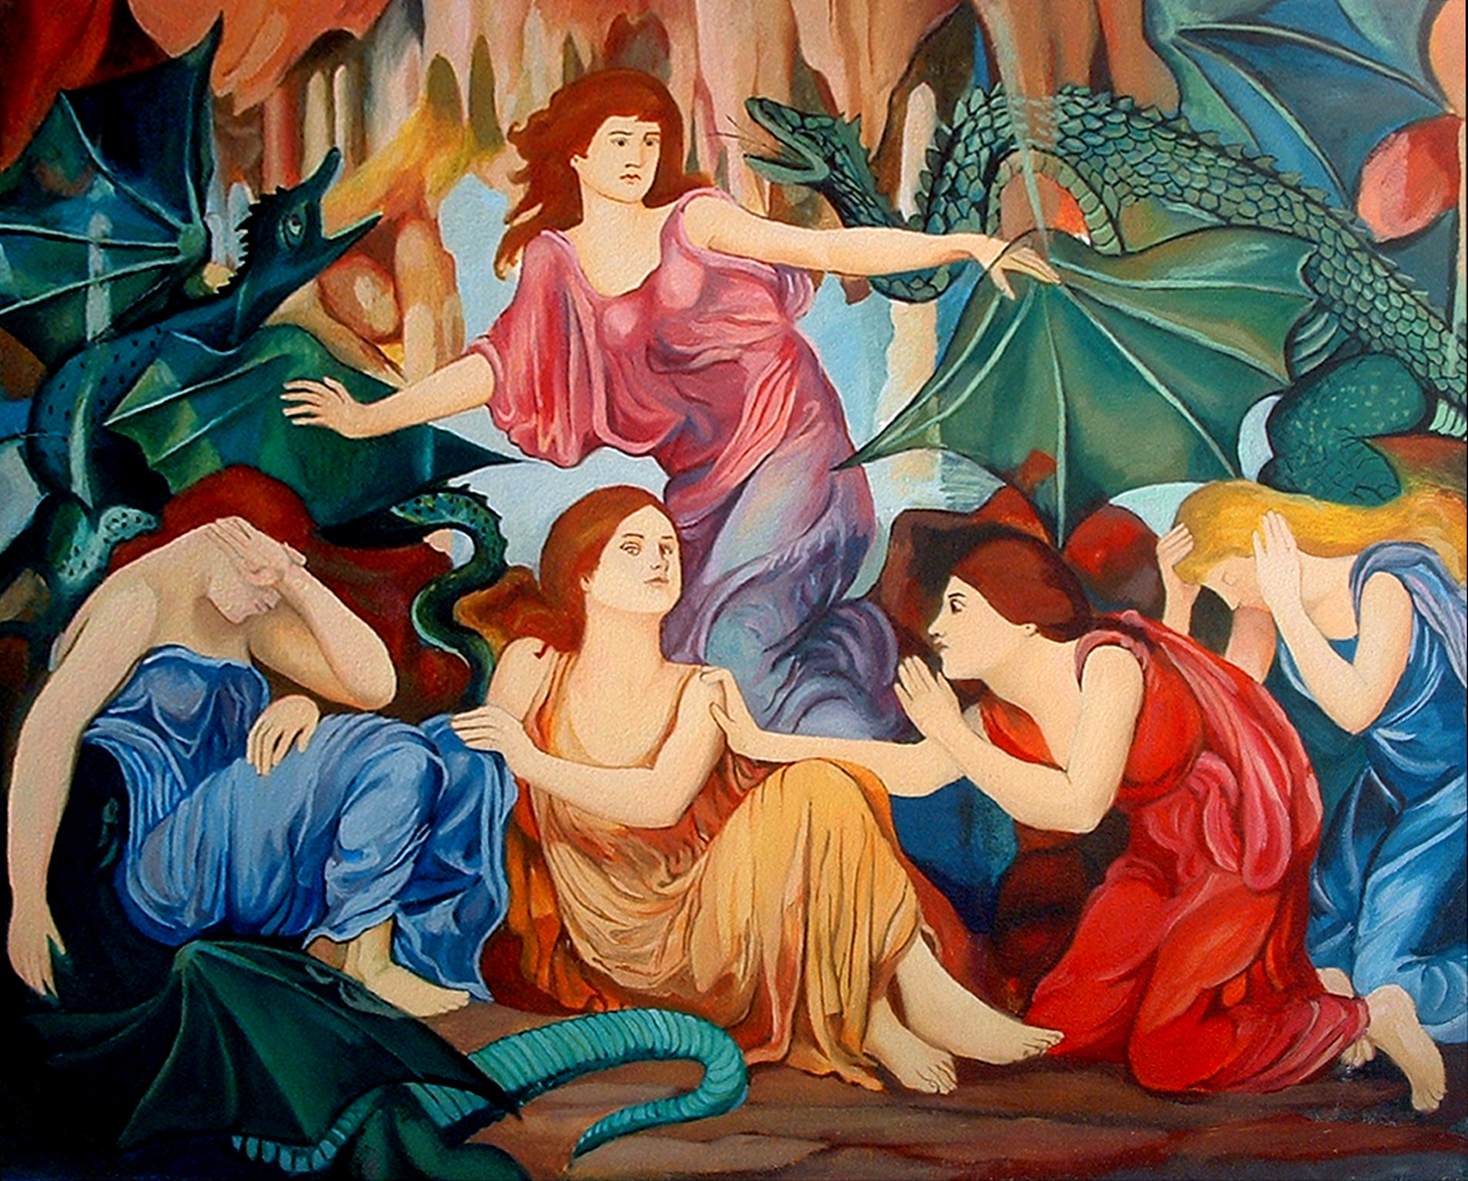 Las cautivas, de Evelyn de Morgan - copia de  Cristina Alejos